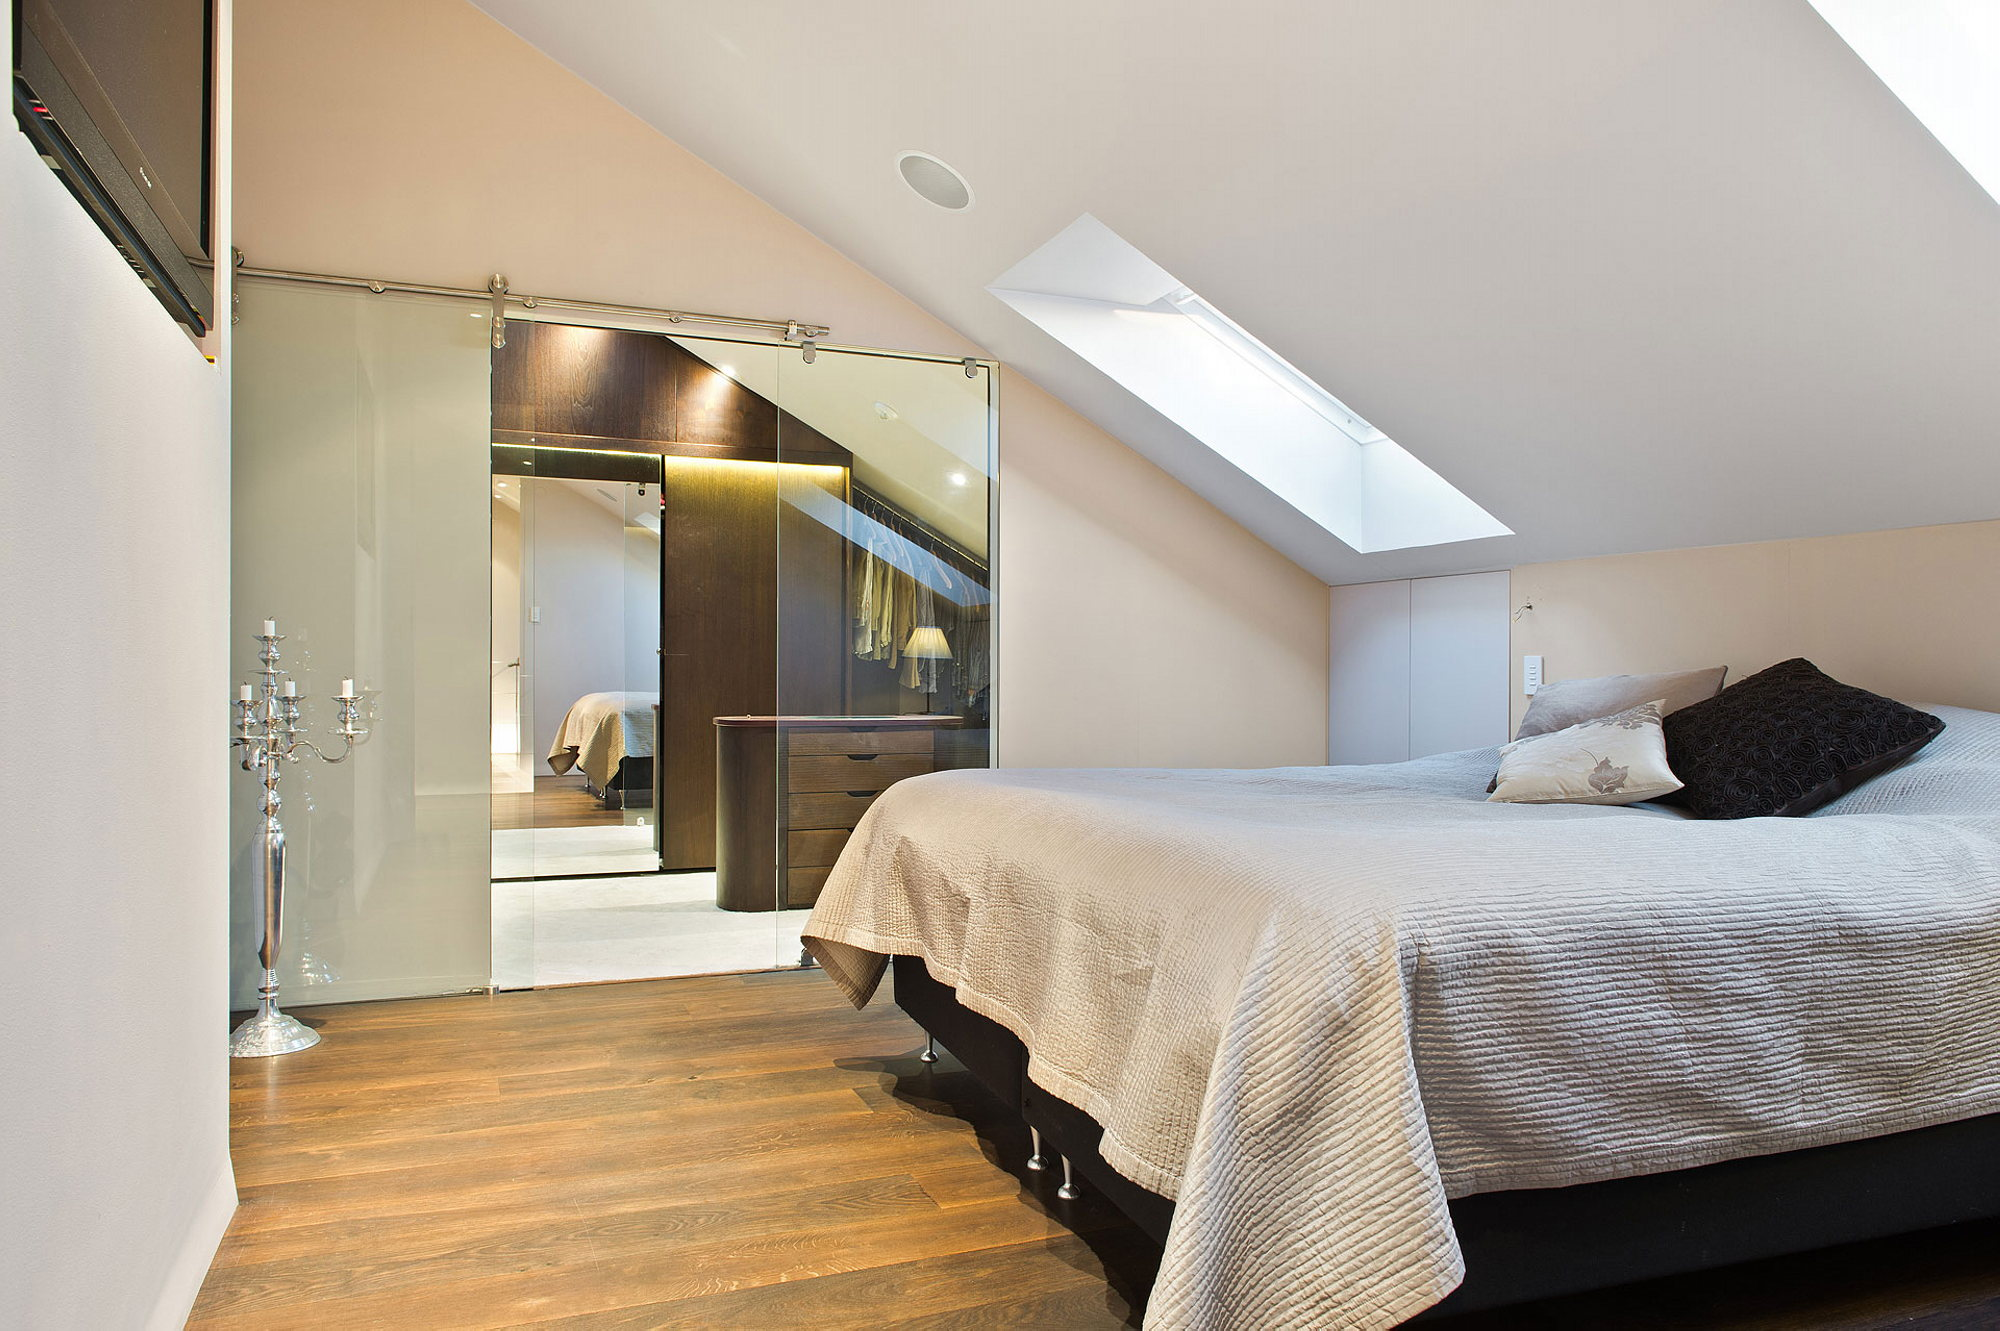 Extraordinary Square Meters On Attic Stockholm Apartment Stockholm 100 Square Feet Bedroom Design Square Bedroom Interior Design Square Meters Attic Apartment bedroom Square Bedroom Design